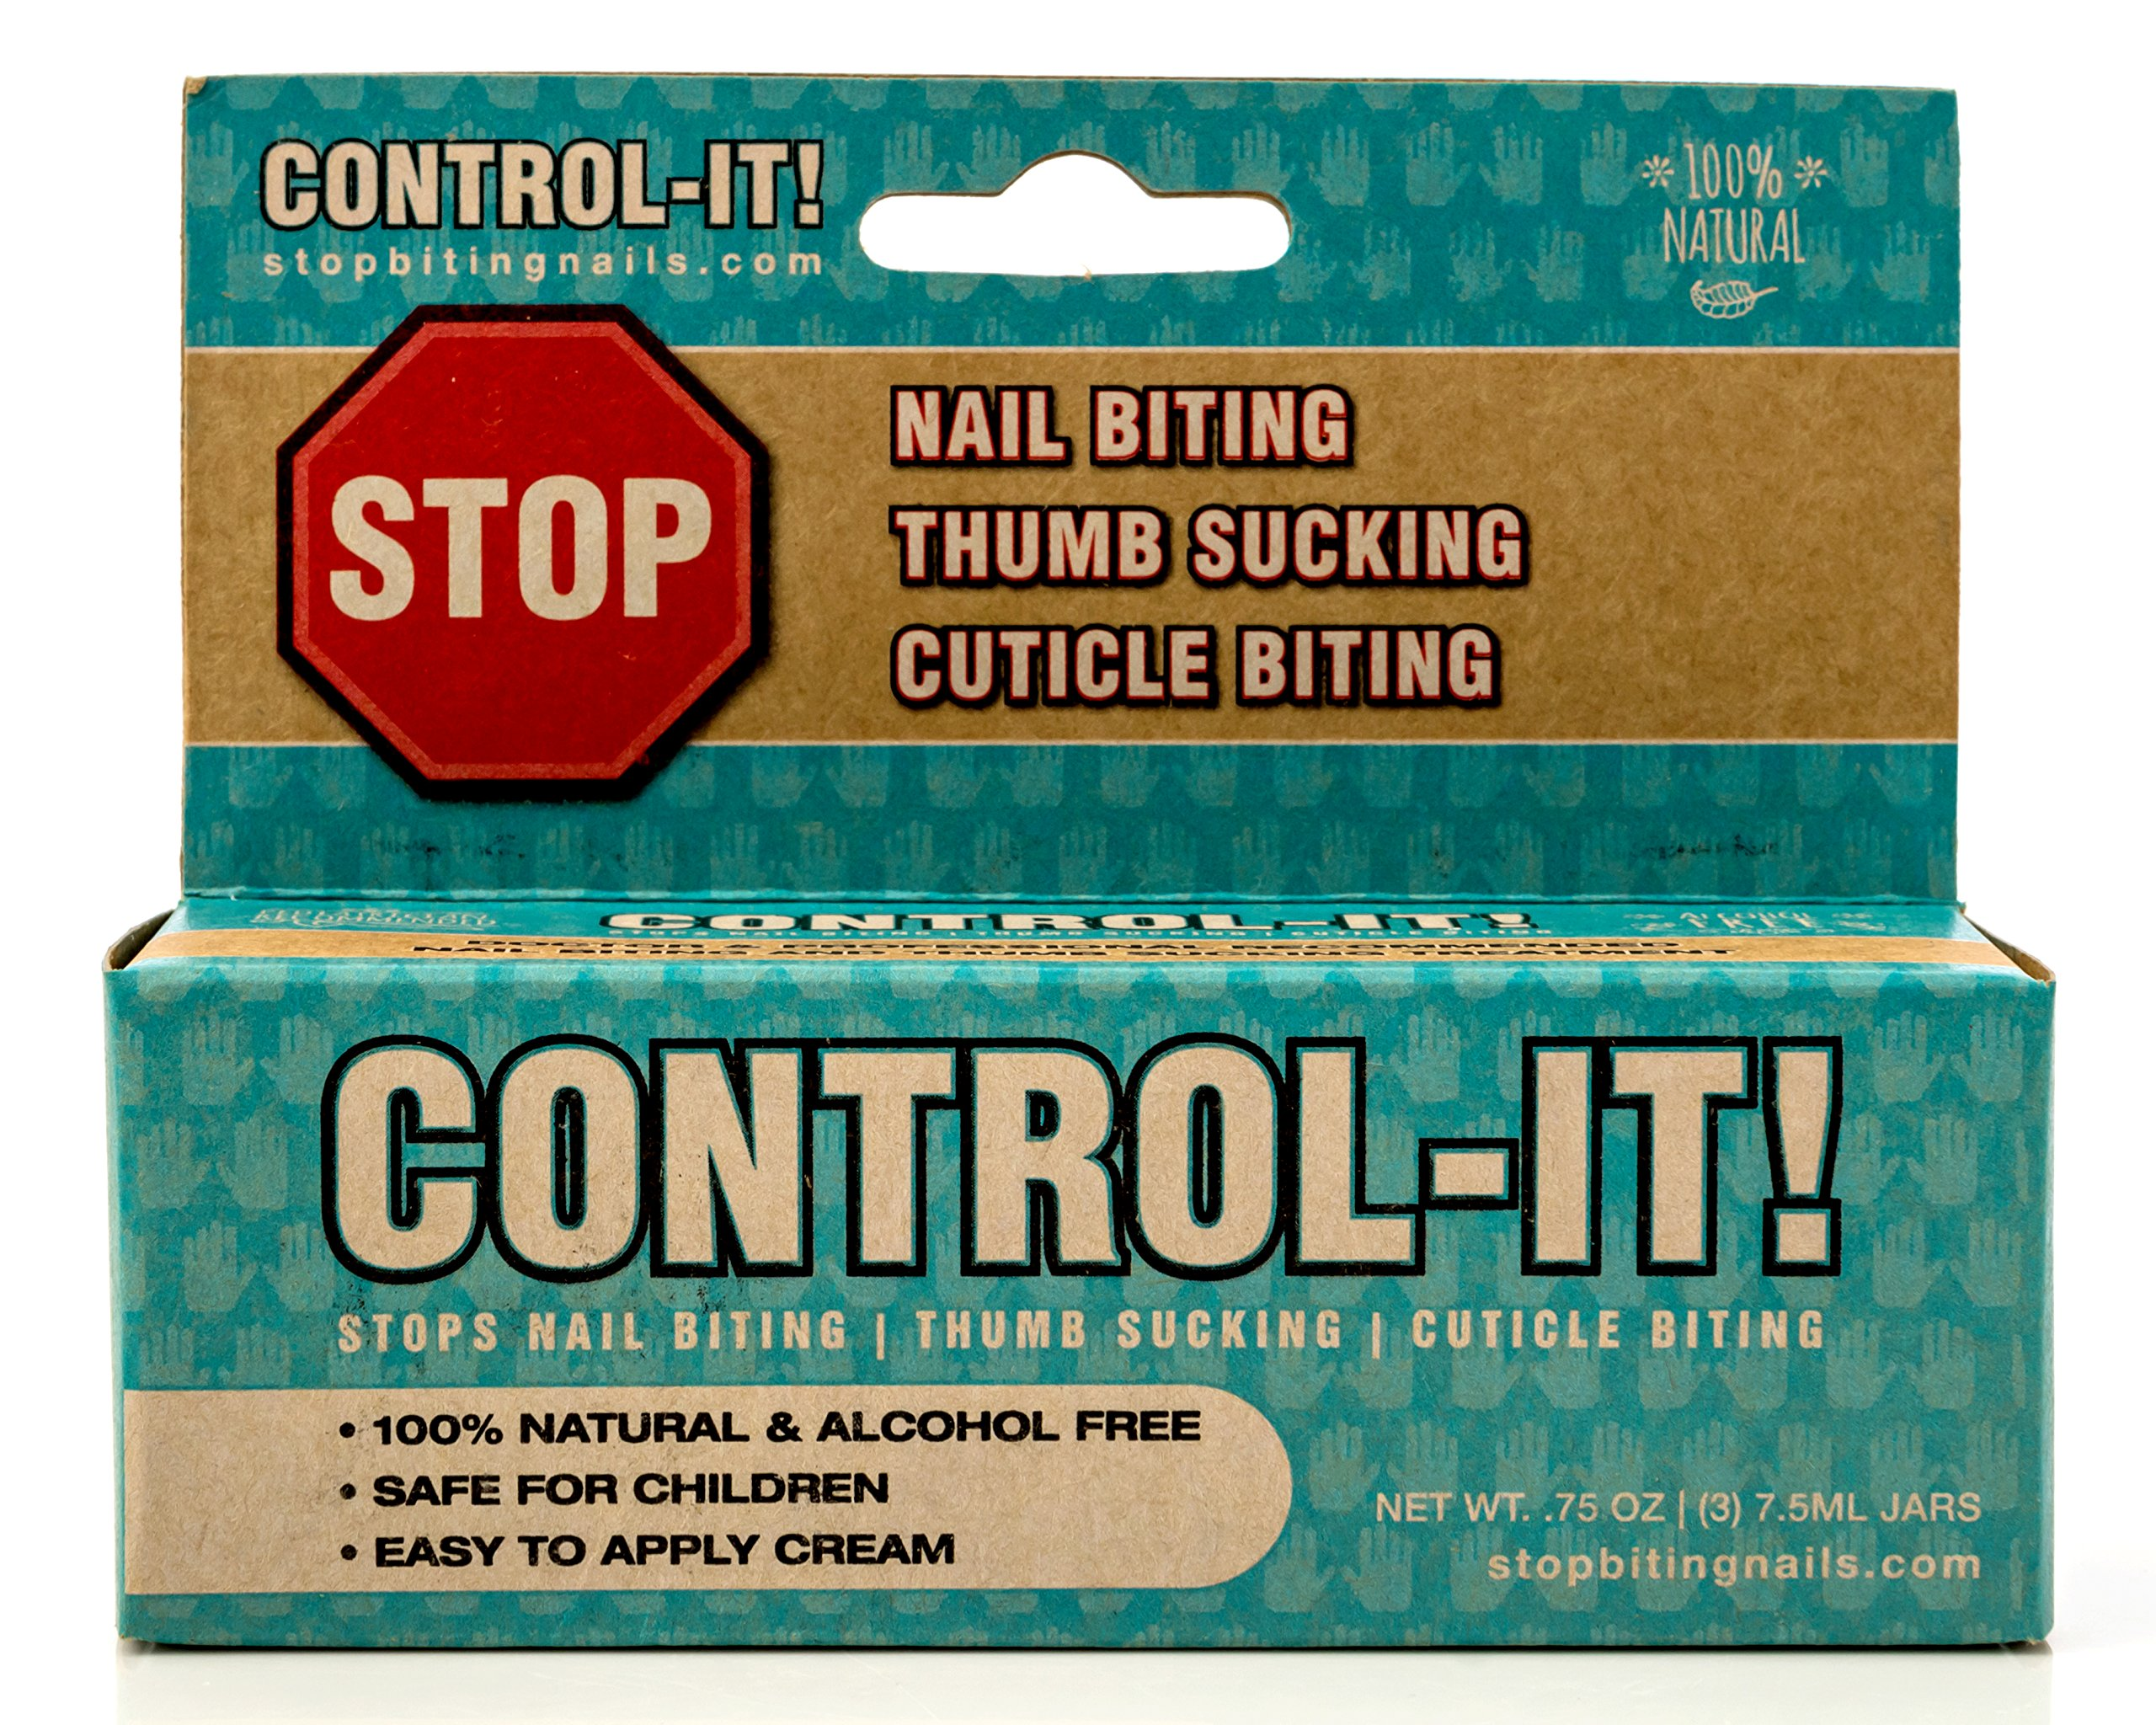 Control-It Stop Thumb Sucking & Nail Biting Cream (3-Pack) All-Natural, Kid-Safe Deterrent | Gentle on Skin, Teeth, Fingers | Bitter Taste, Easy-to-Apply Formula